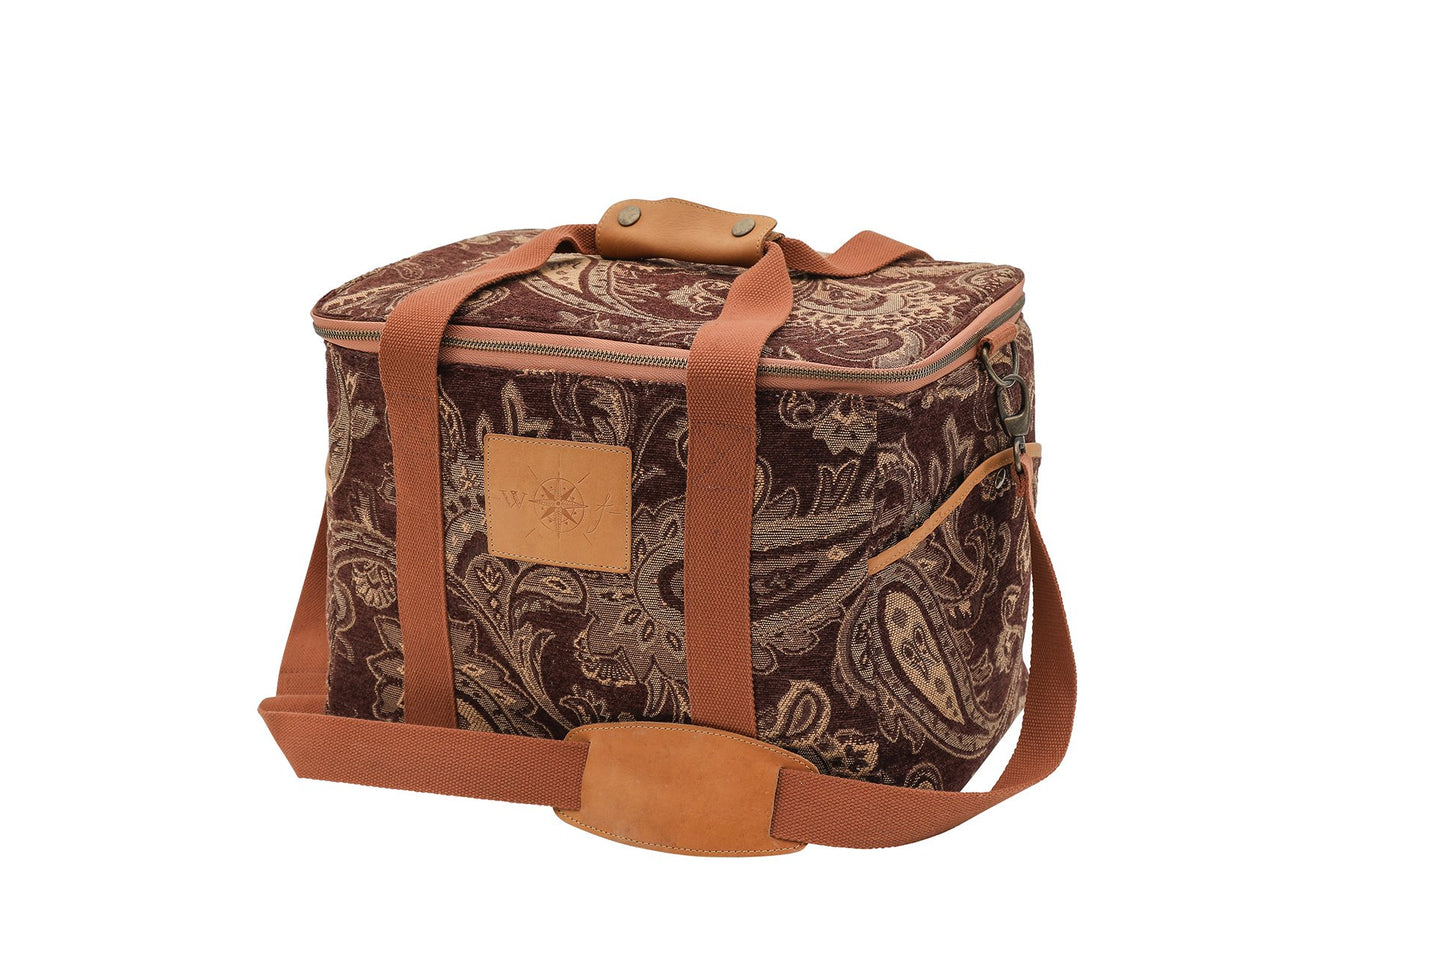 Coco Paisley Cooler Bag